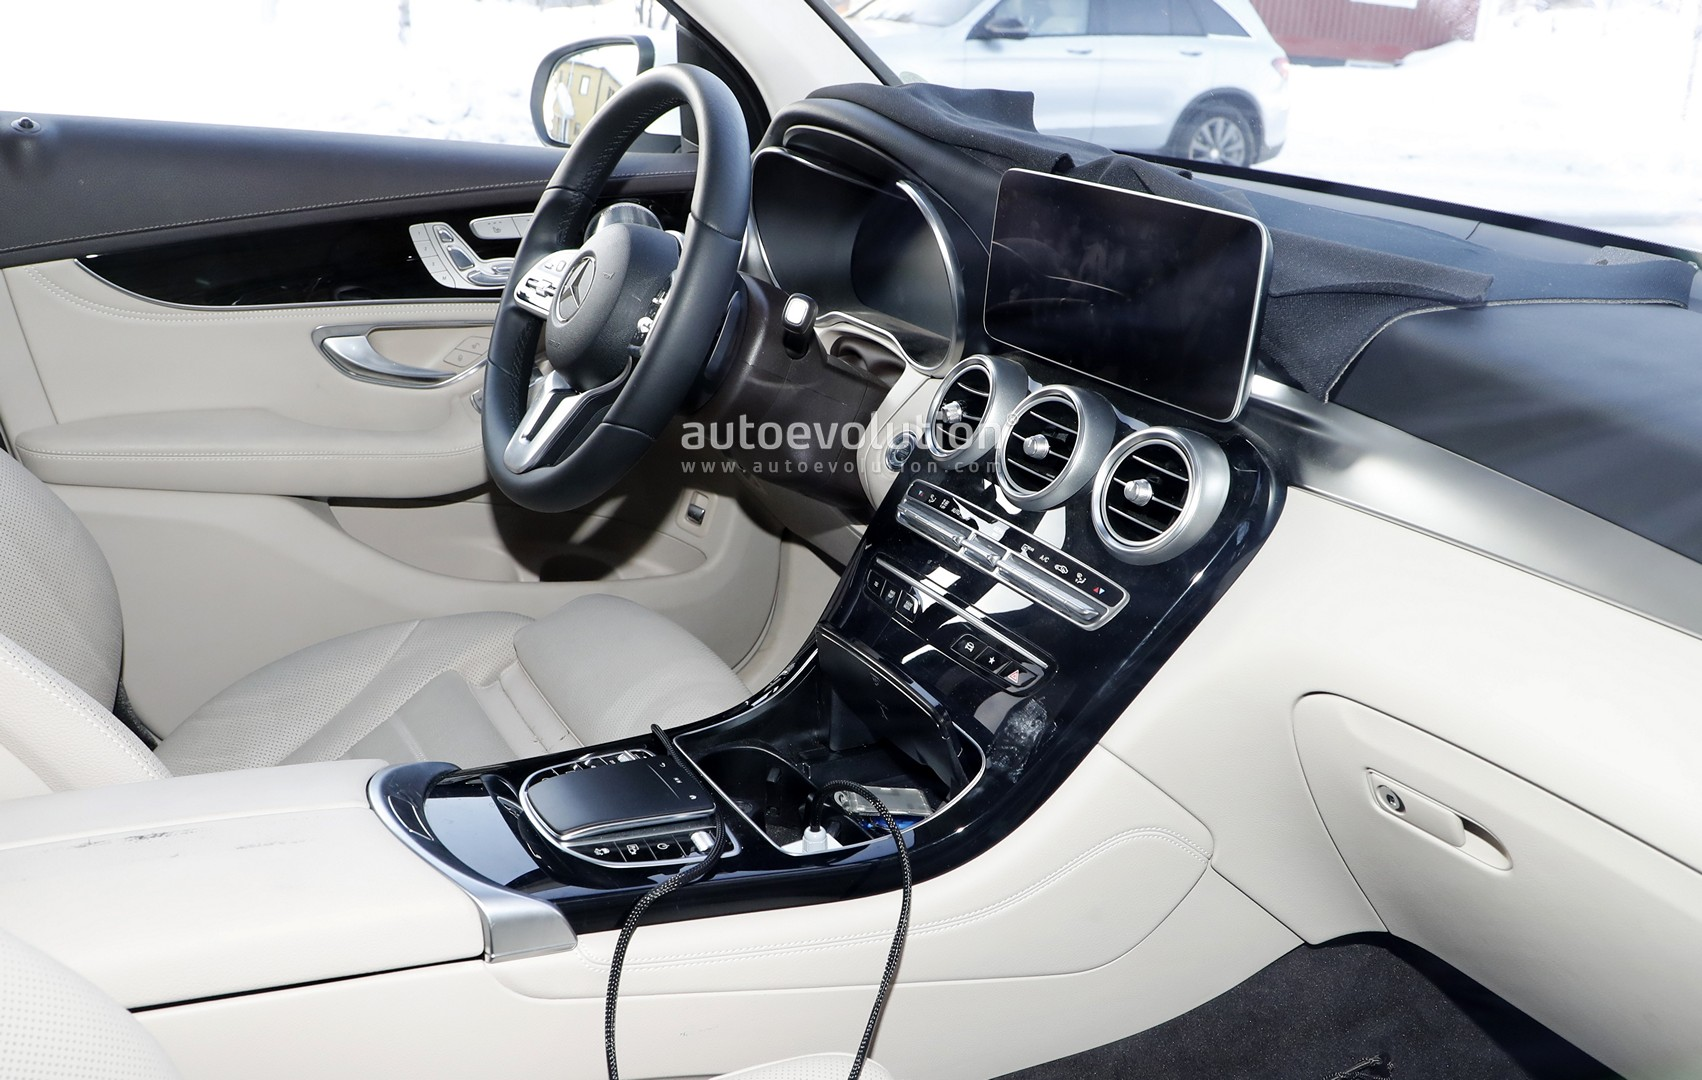 Mercedes GLC Facelift Spied, Reveals Interior Changes